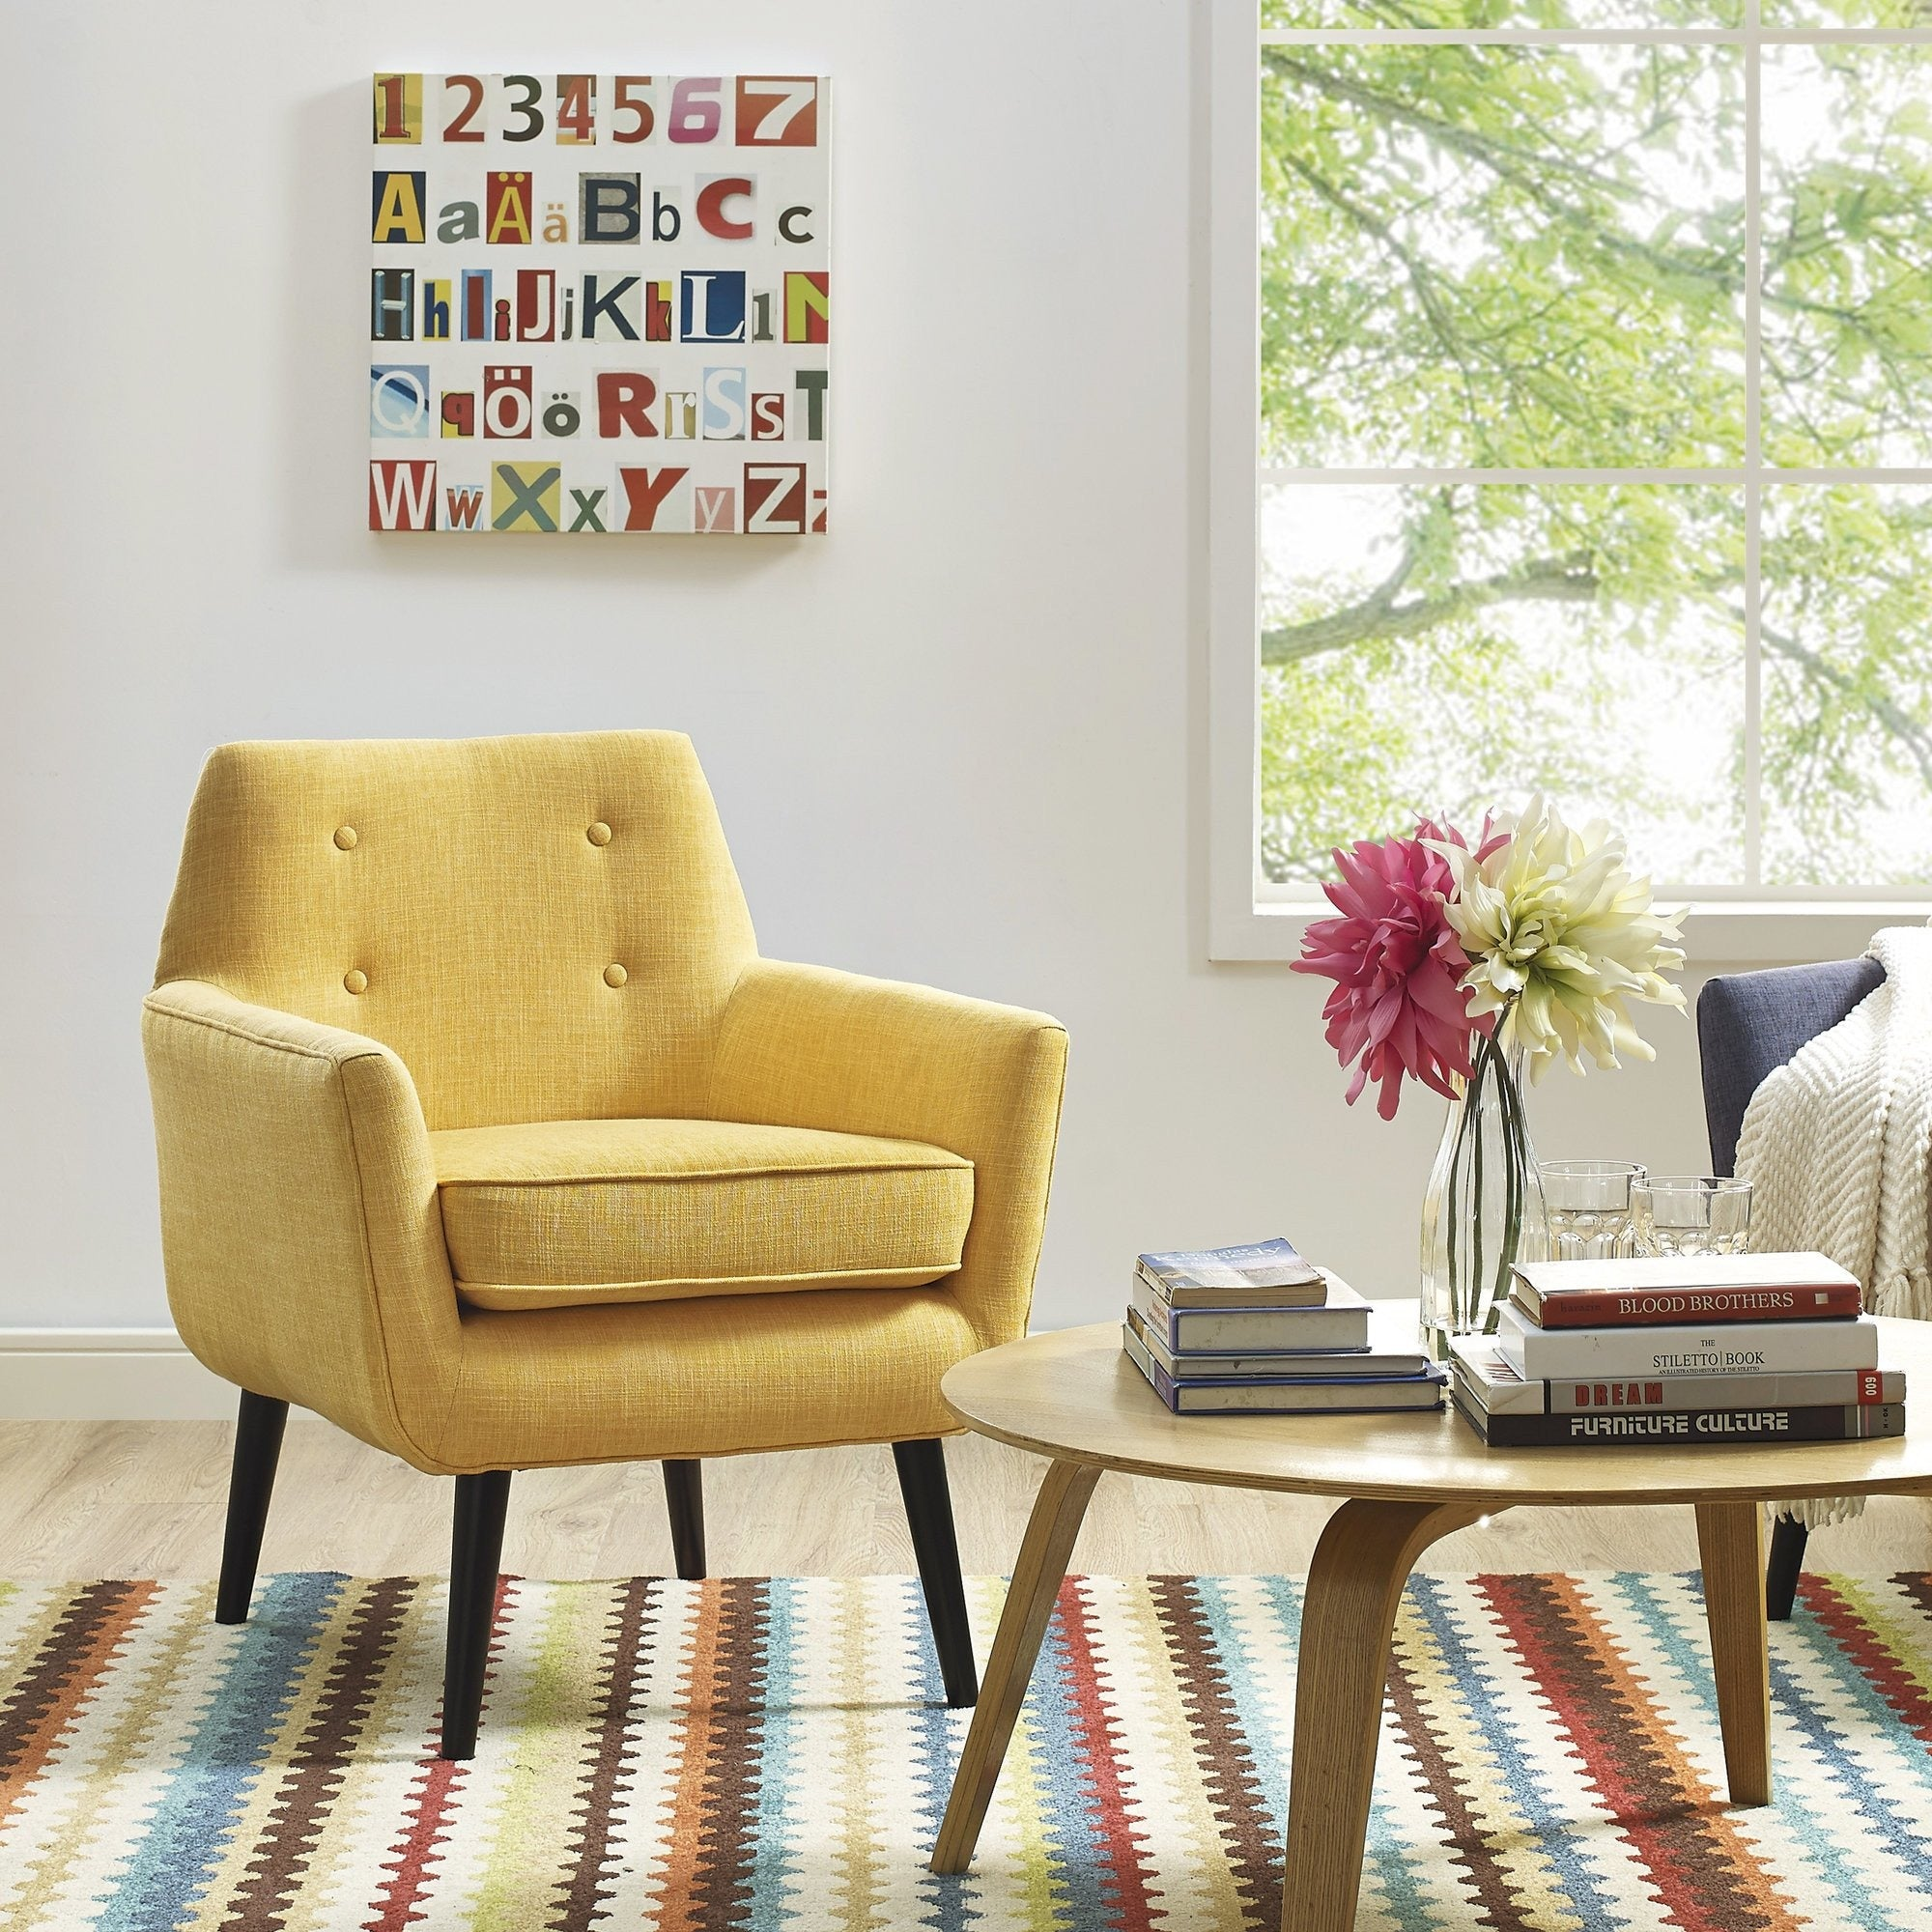 Tov furniture modern clyde mustard yellow linen chair tov a38 y minimal